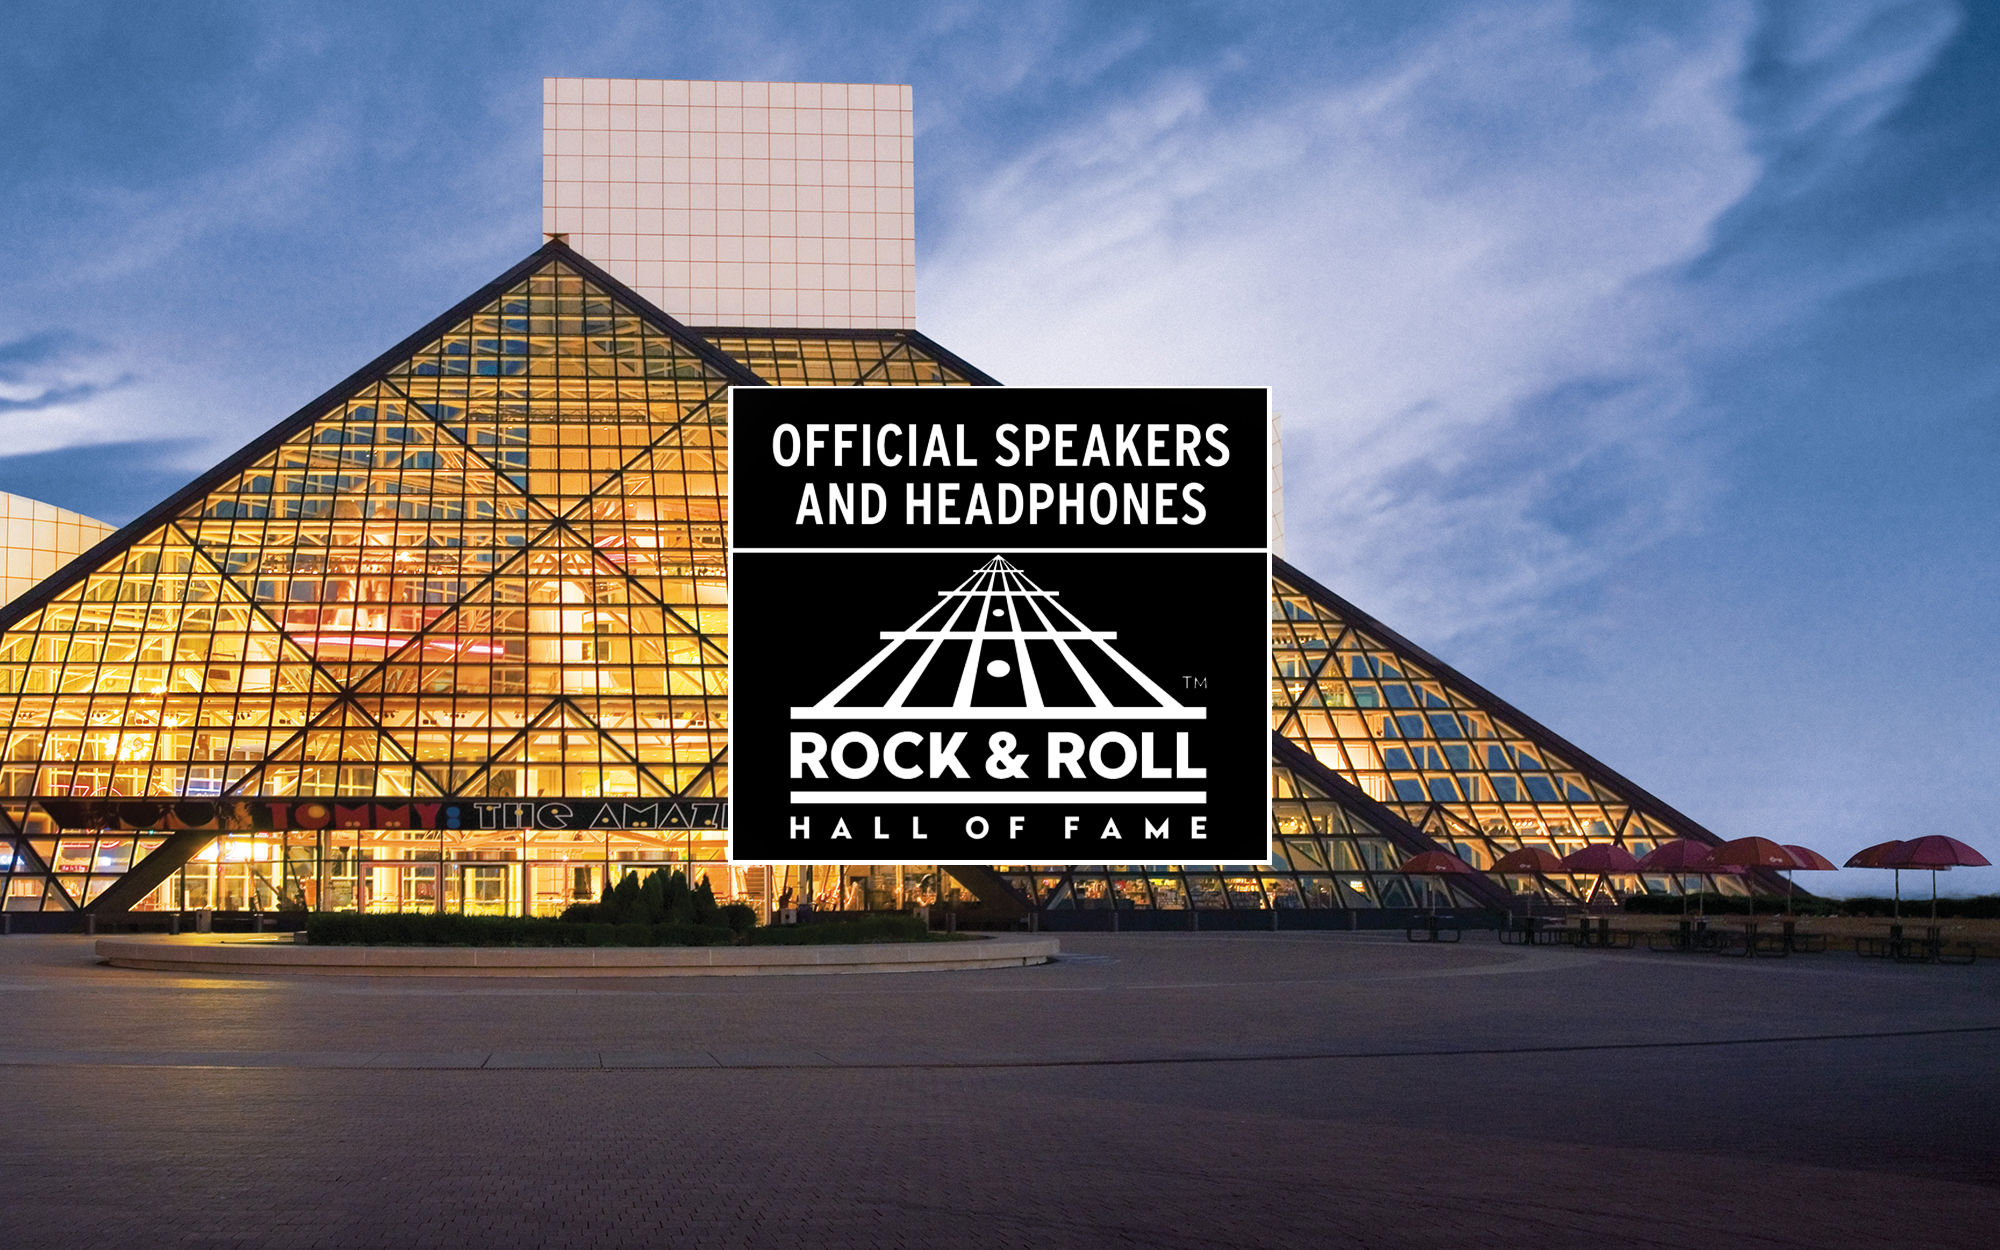 Official Speakers and Headphones of the Rock and Roll HOF